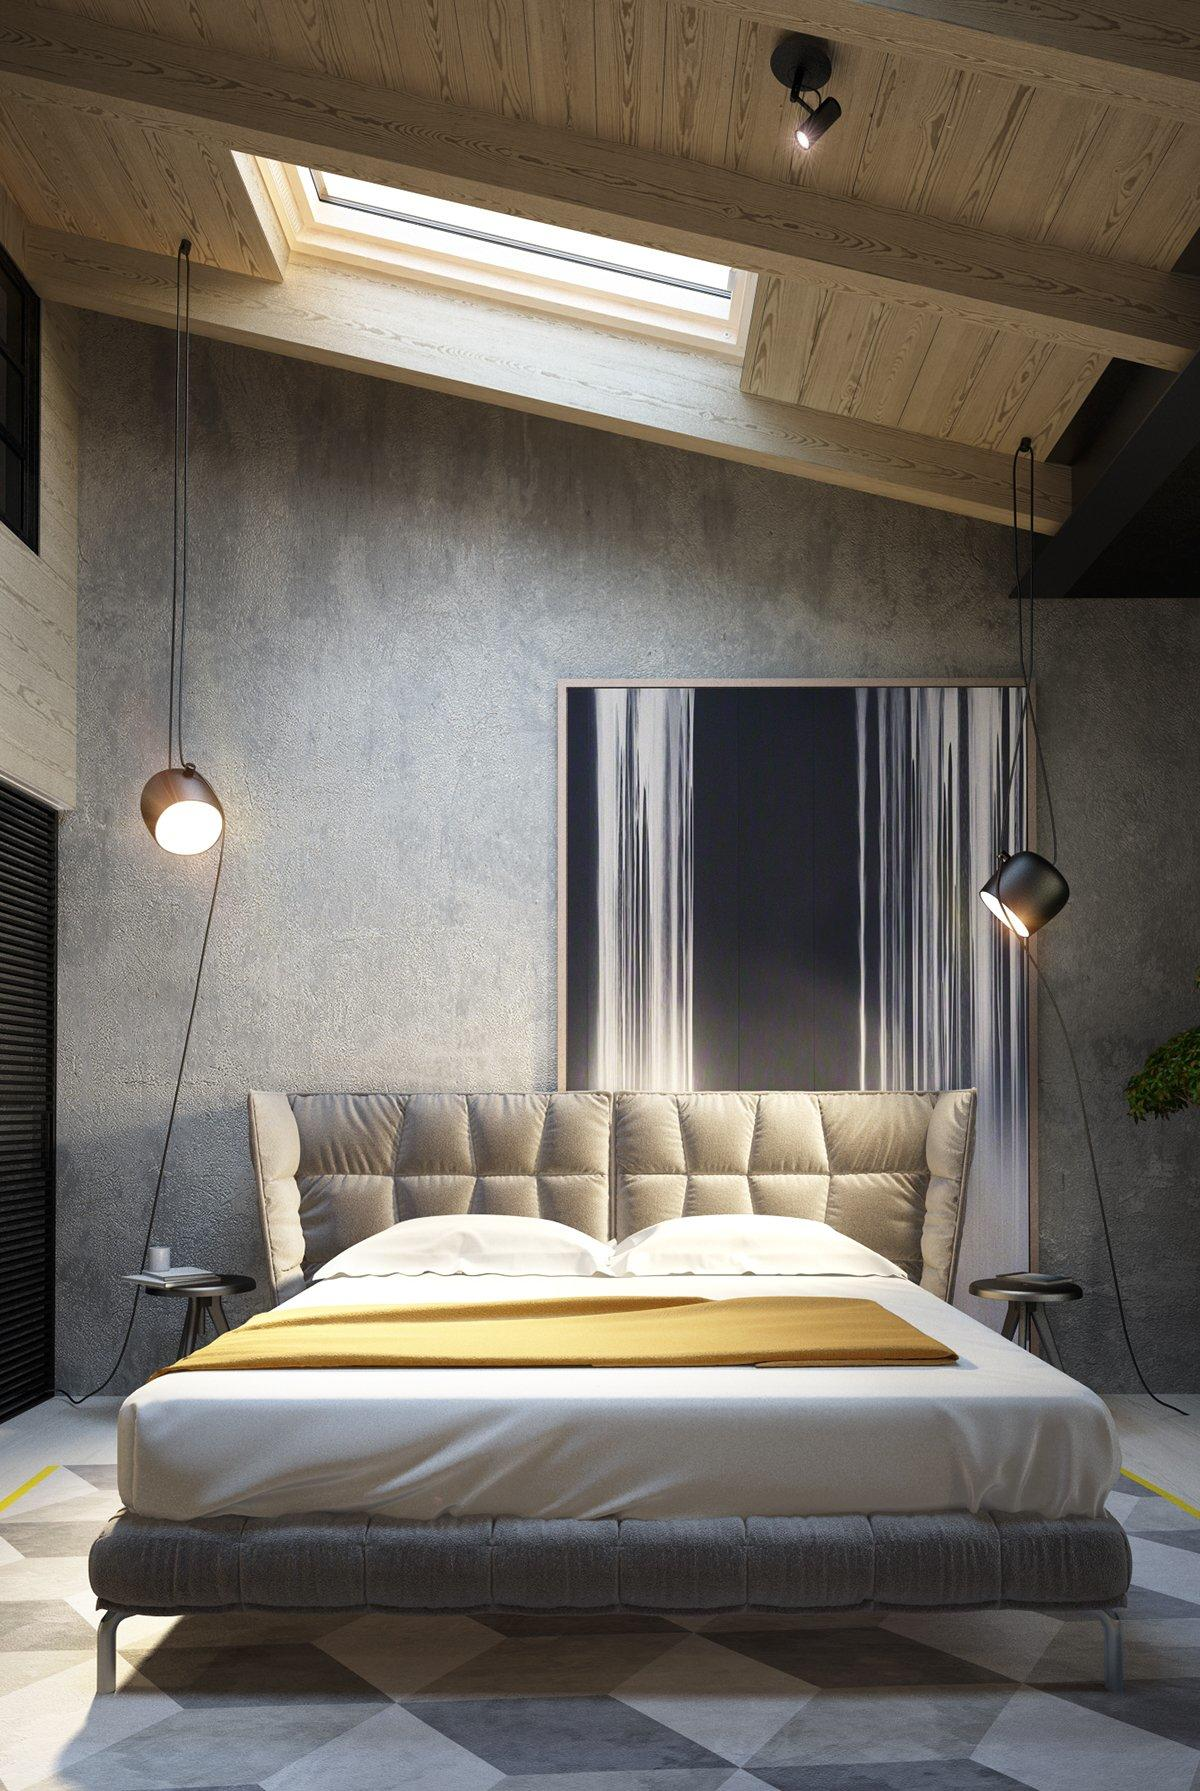 Concrete wall ideas exposed concrete walls ideas u0026 inspiration PXGOGQC